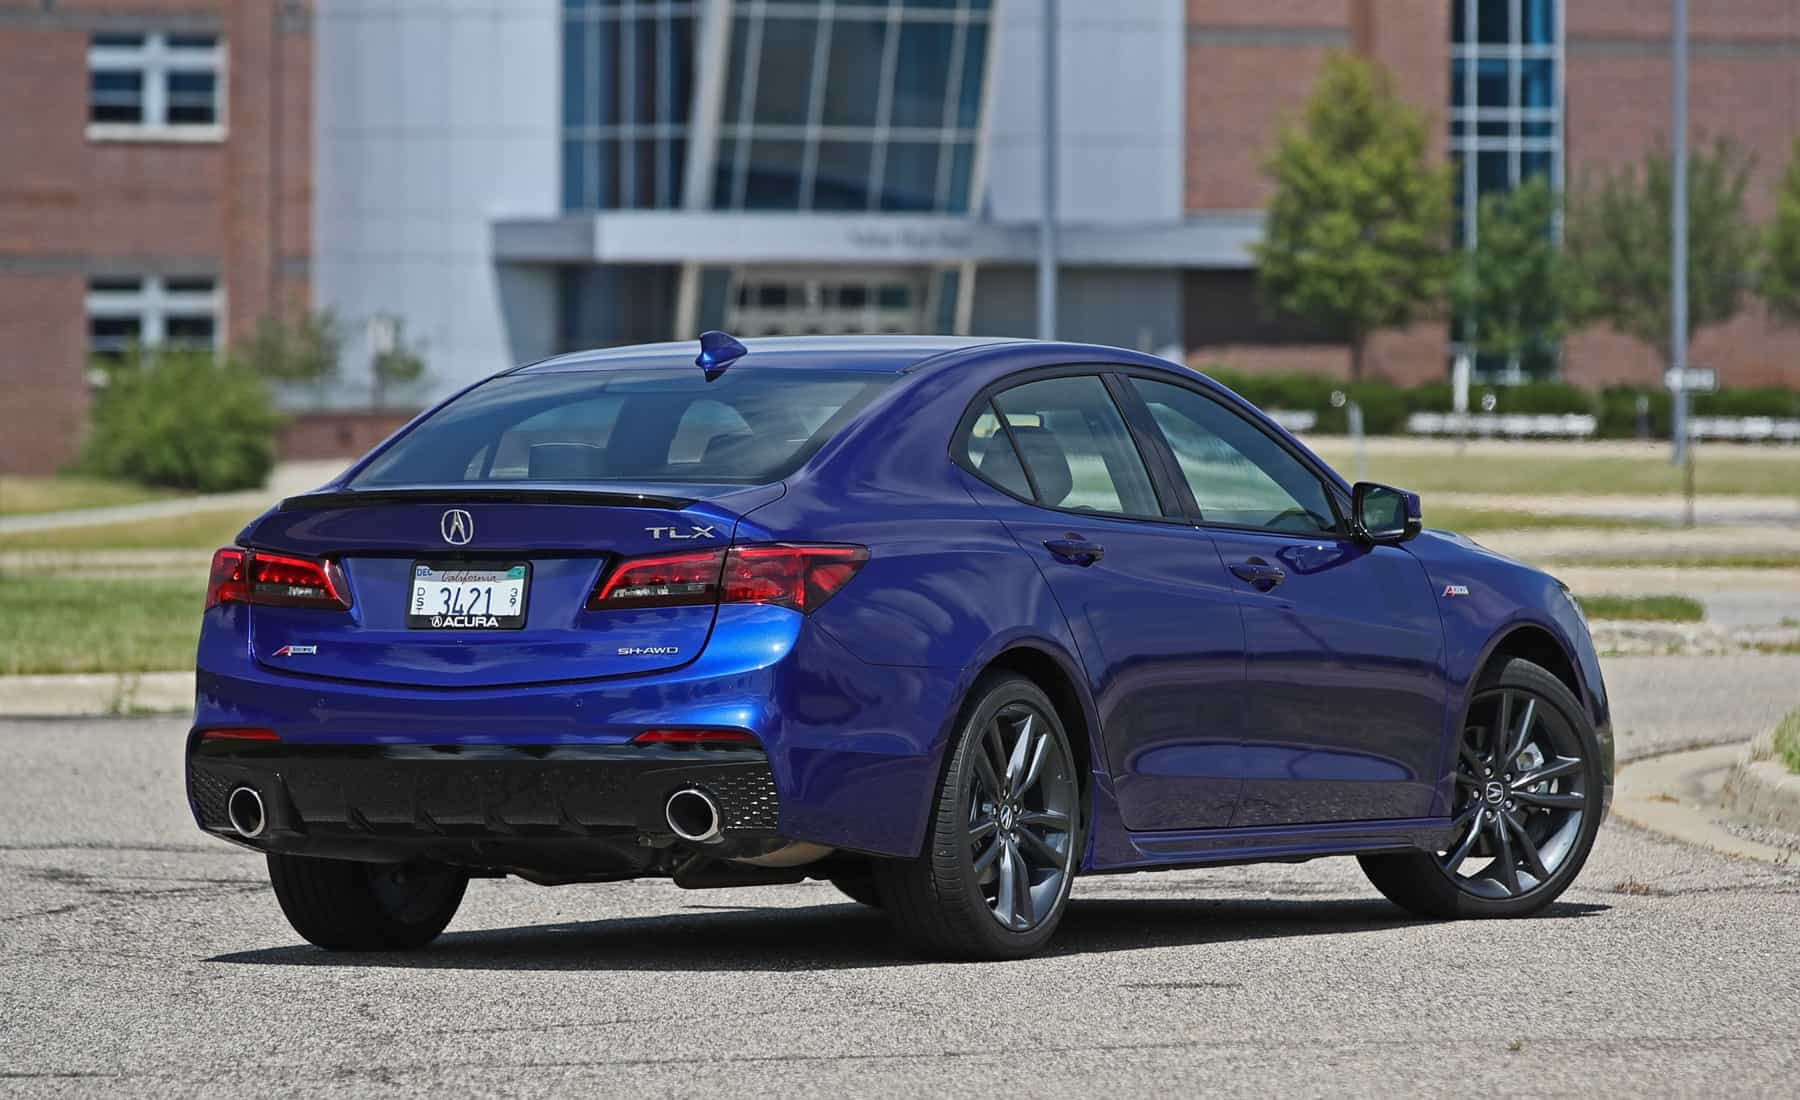 2018 Acura TLX Exterior Rear (View 41 of 46)